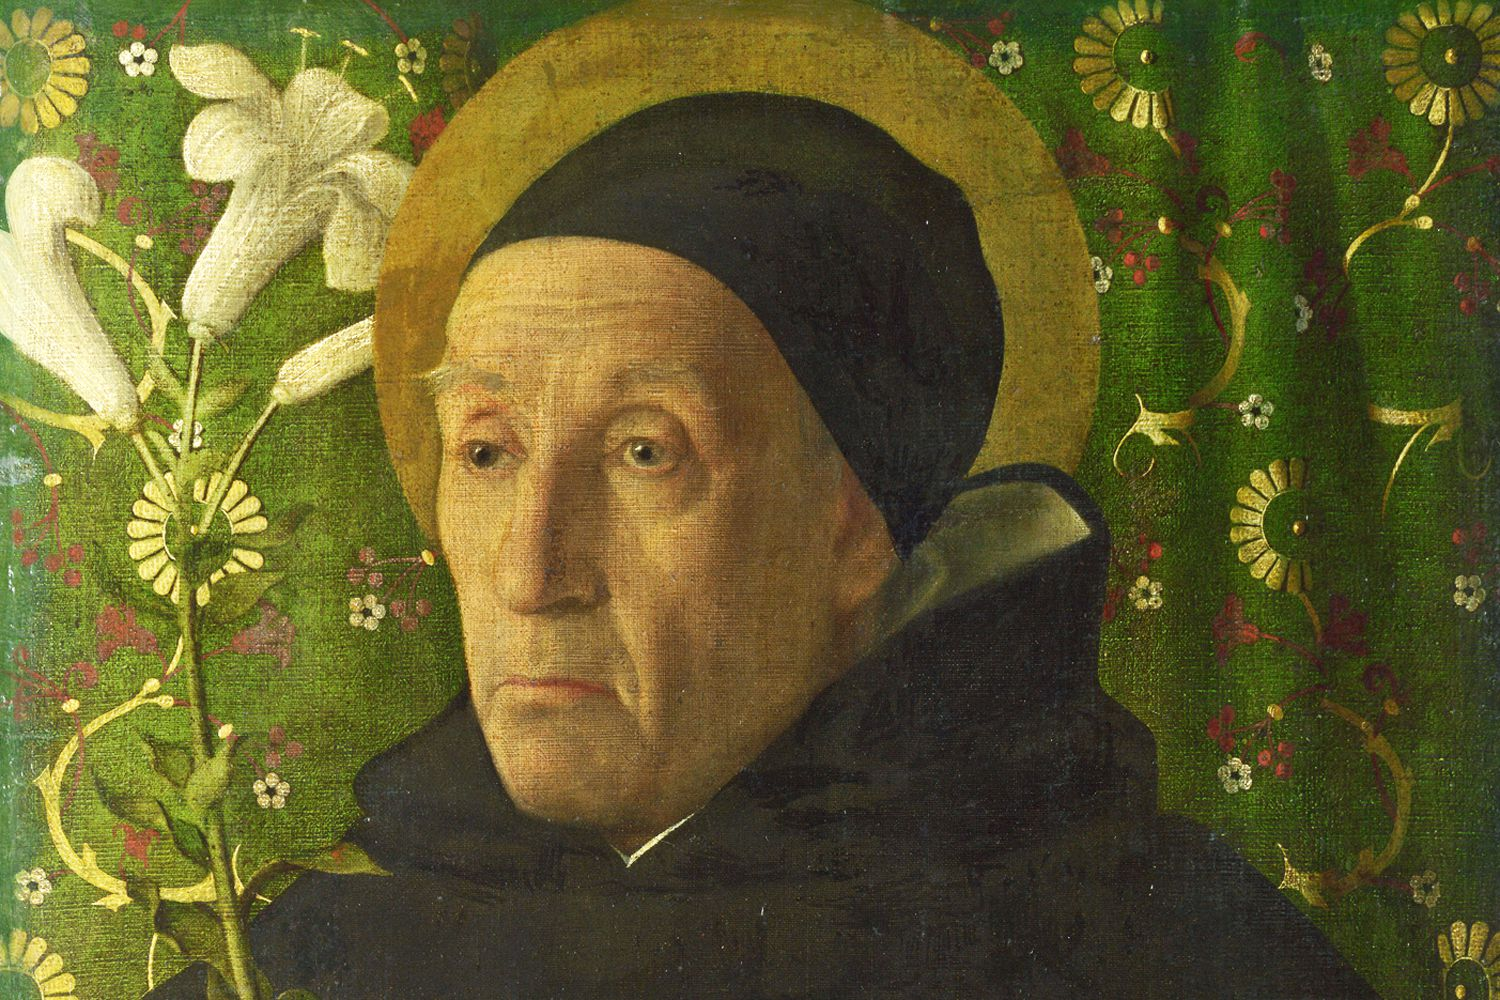 18 Masterful Quotes of Meister Eckhart